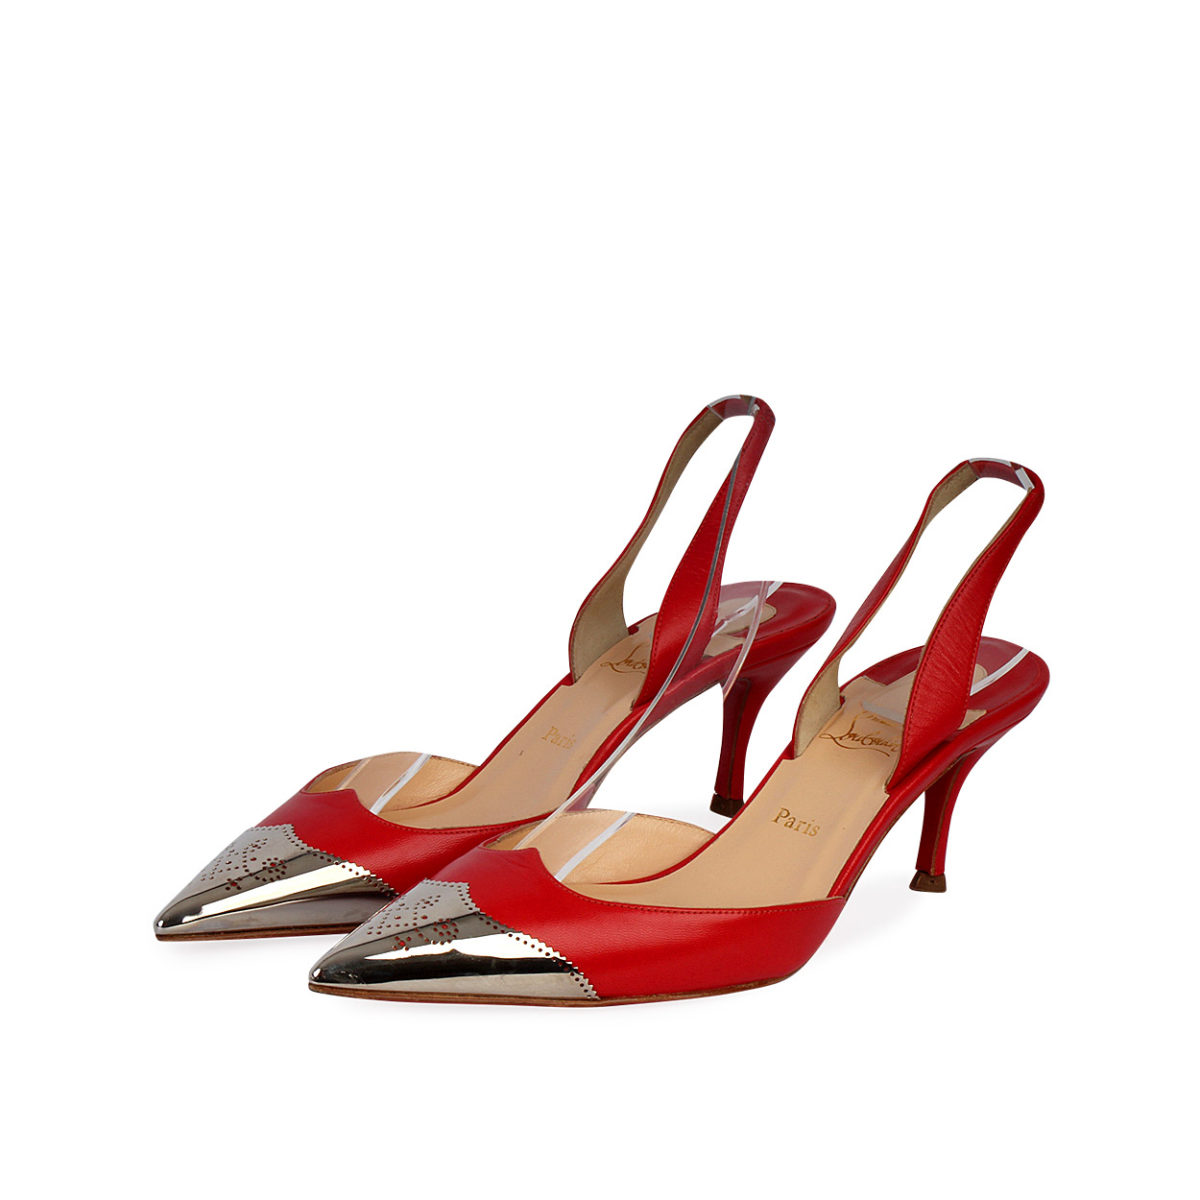 new concept ee0ee 8a778 CHRISTIAN LOUBOUTIN Leather Calamijane Metal Cap Toe Sandals Red - S: 35.5  (3)